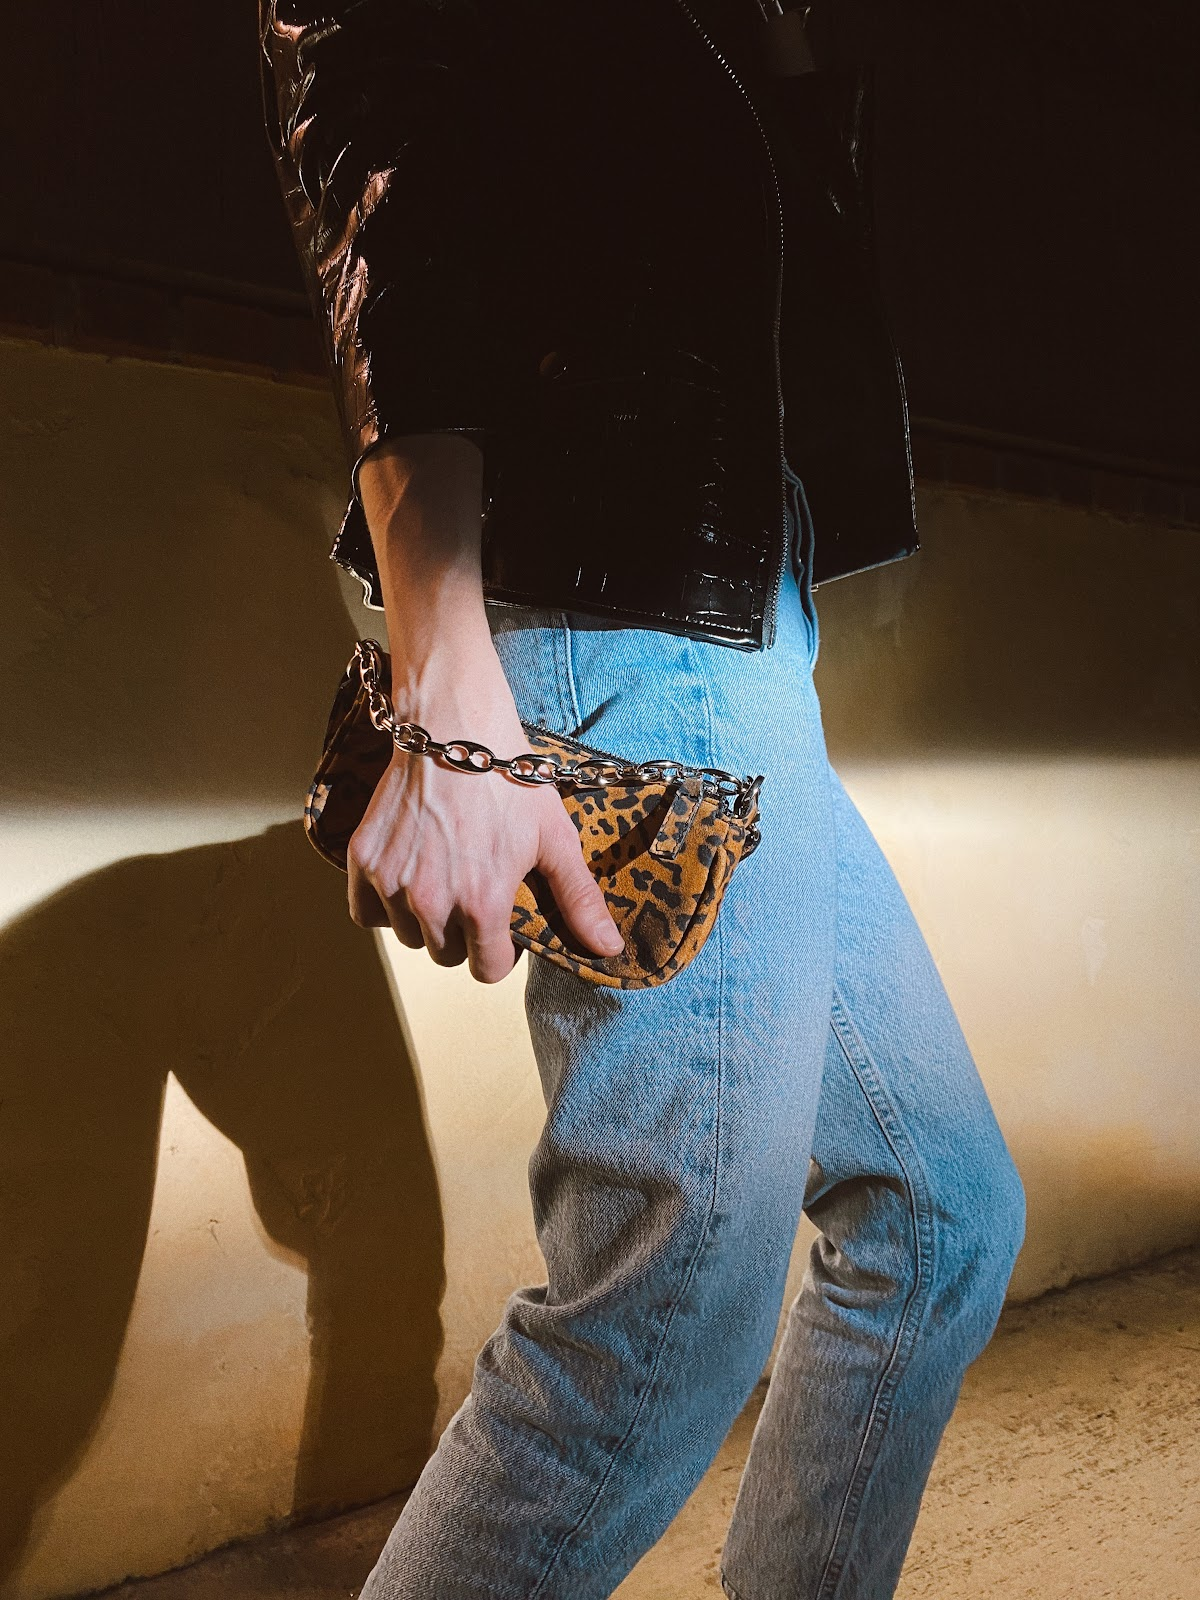 Edgy datenight look via animal print detail and a touch of metal following spring trends